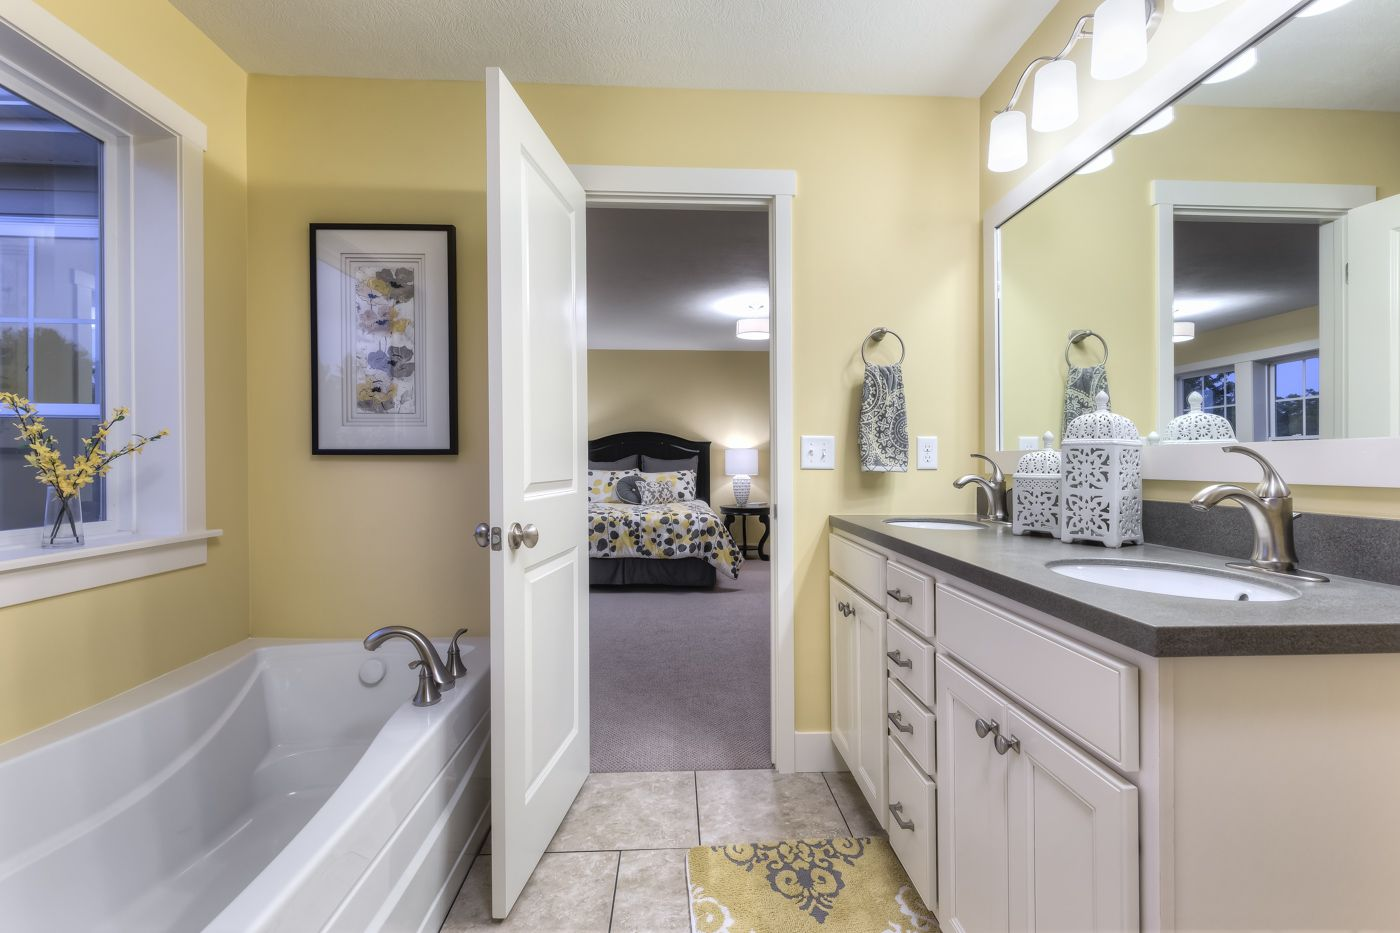 Bathroom featured in the Elements 2200 By Allen Edwin Homes in South Bend, IN